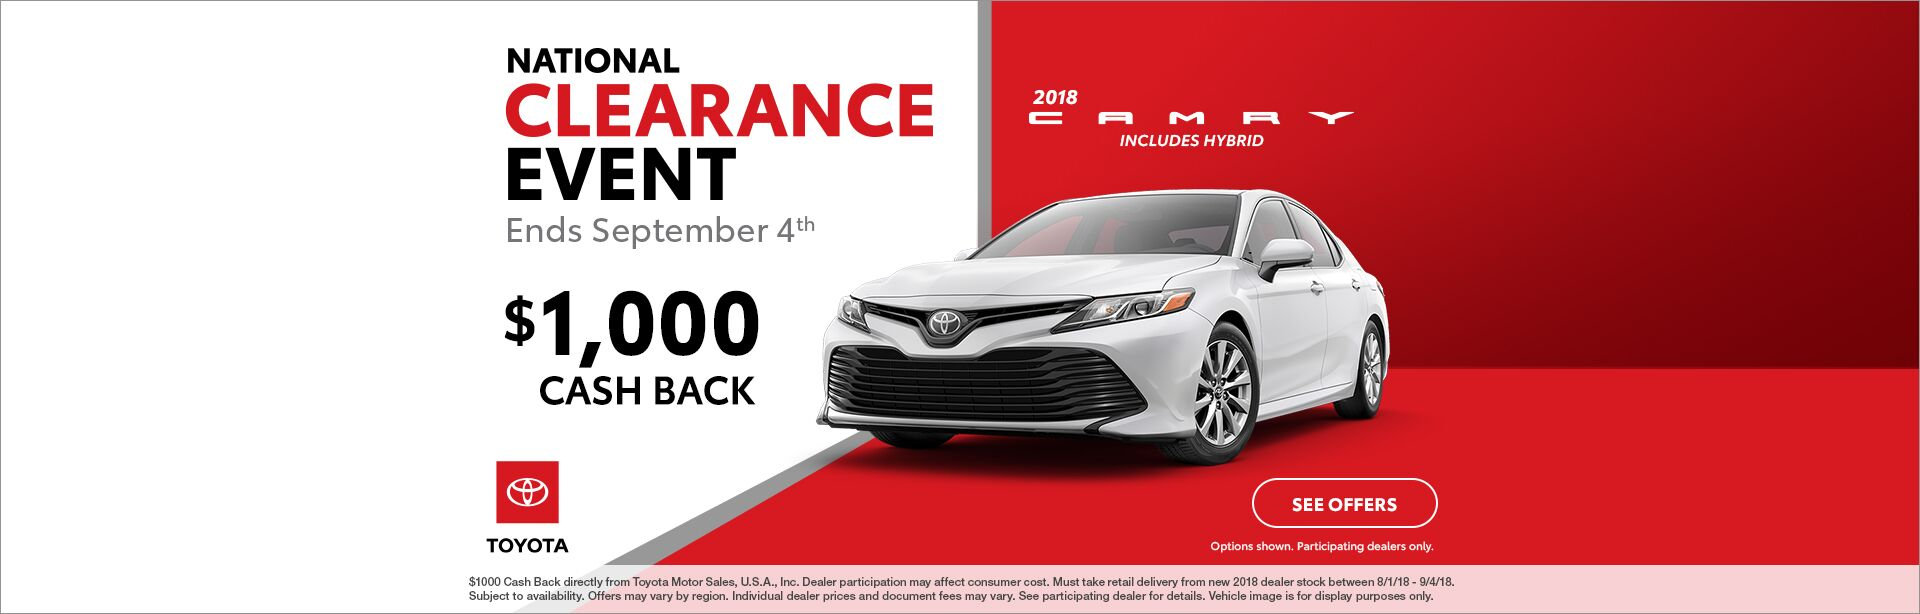 Camry Cash Back National Clearance Event 2018